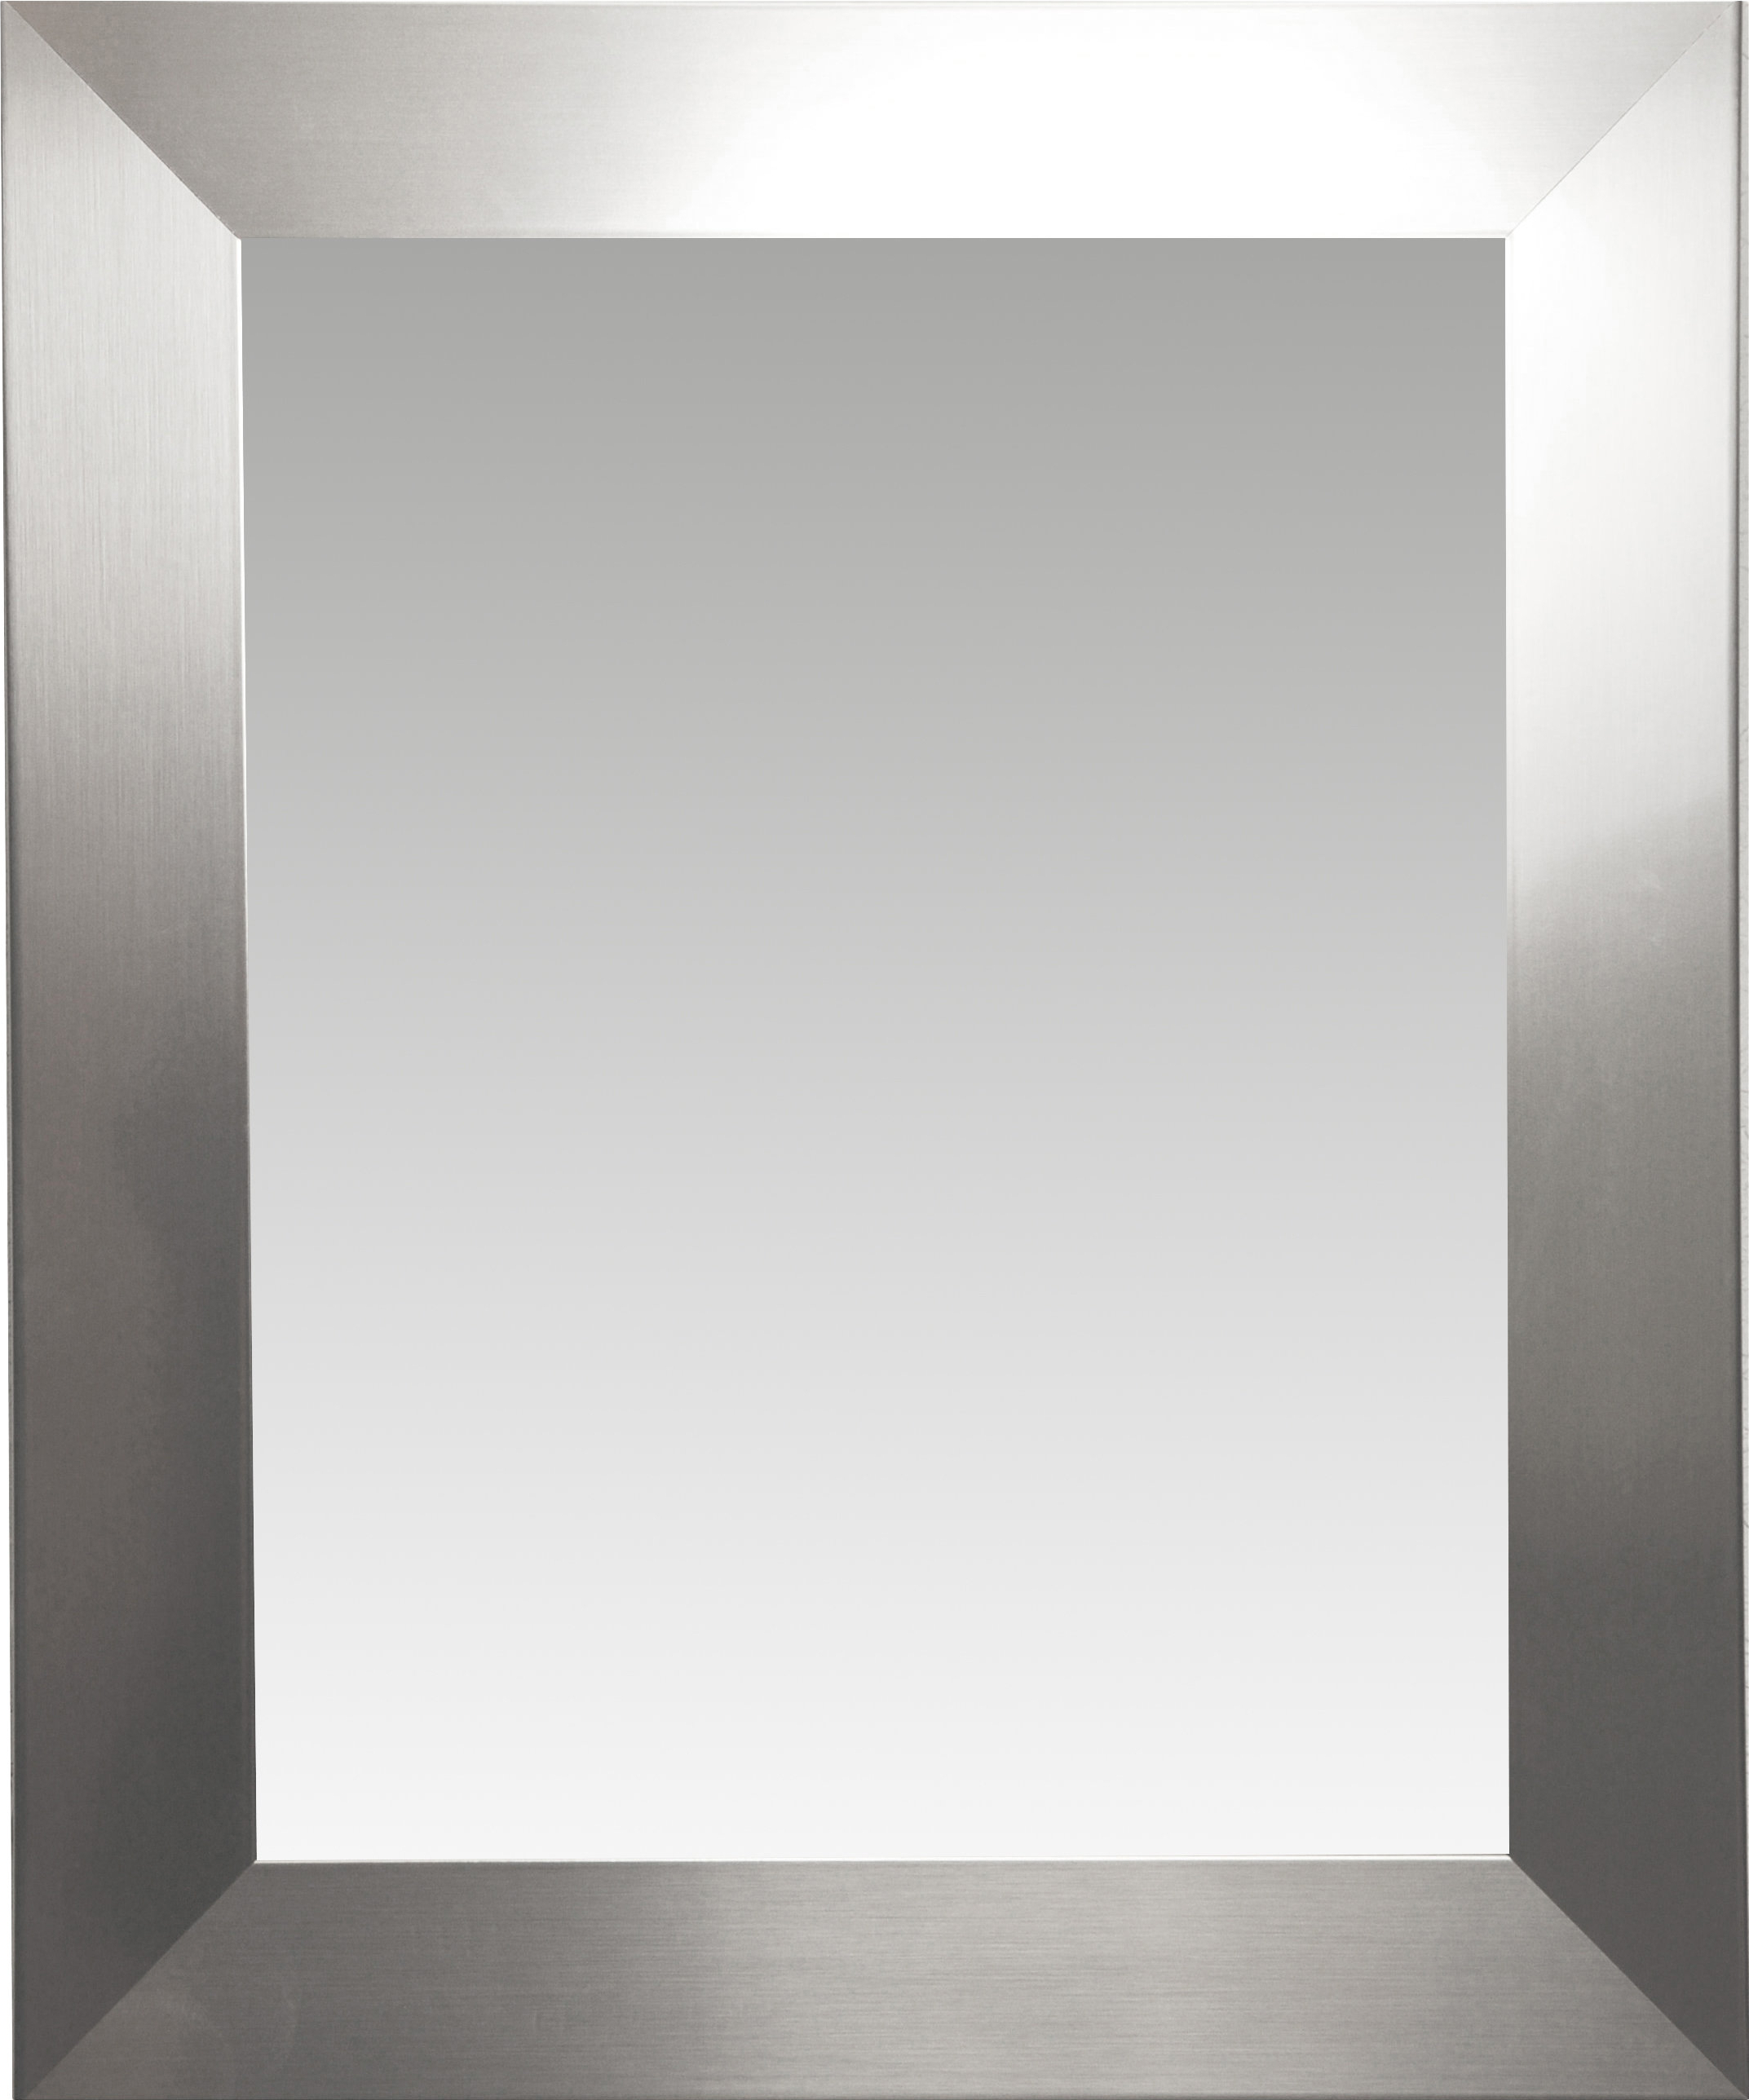 Kurt Modern & Contemporary Wall Mirror In Widely Used Industrial Modern & Contemporary Wall Mirrors (Gallery 7 of 20)